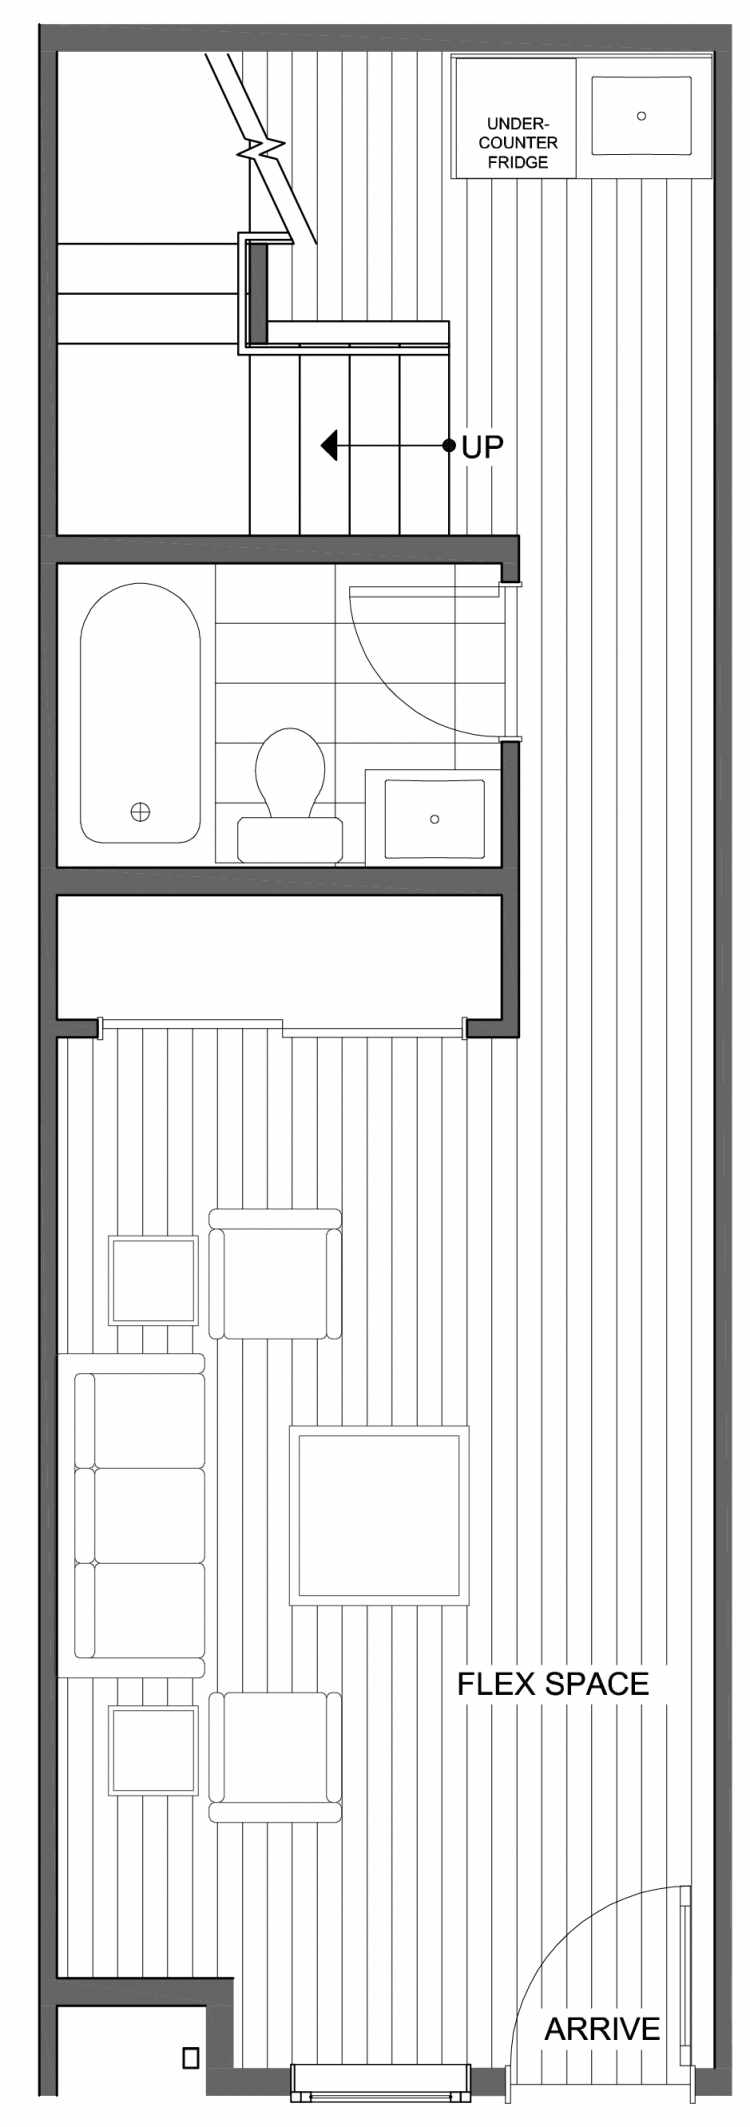 First Floor Plan of 806C N 46th St, One of the Nino 15 East Townhomes by Isola Homes